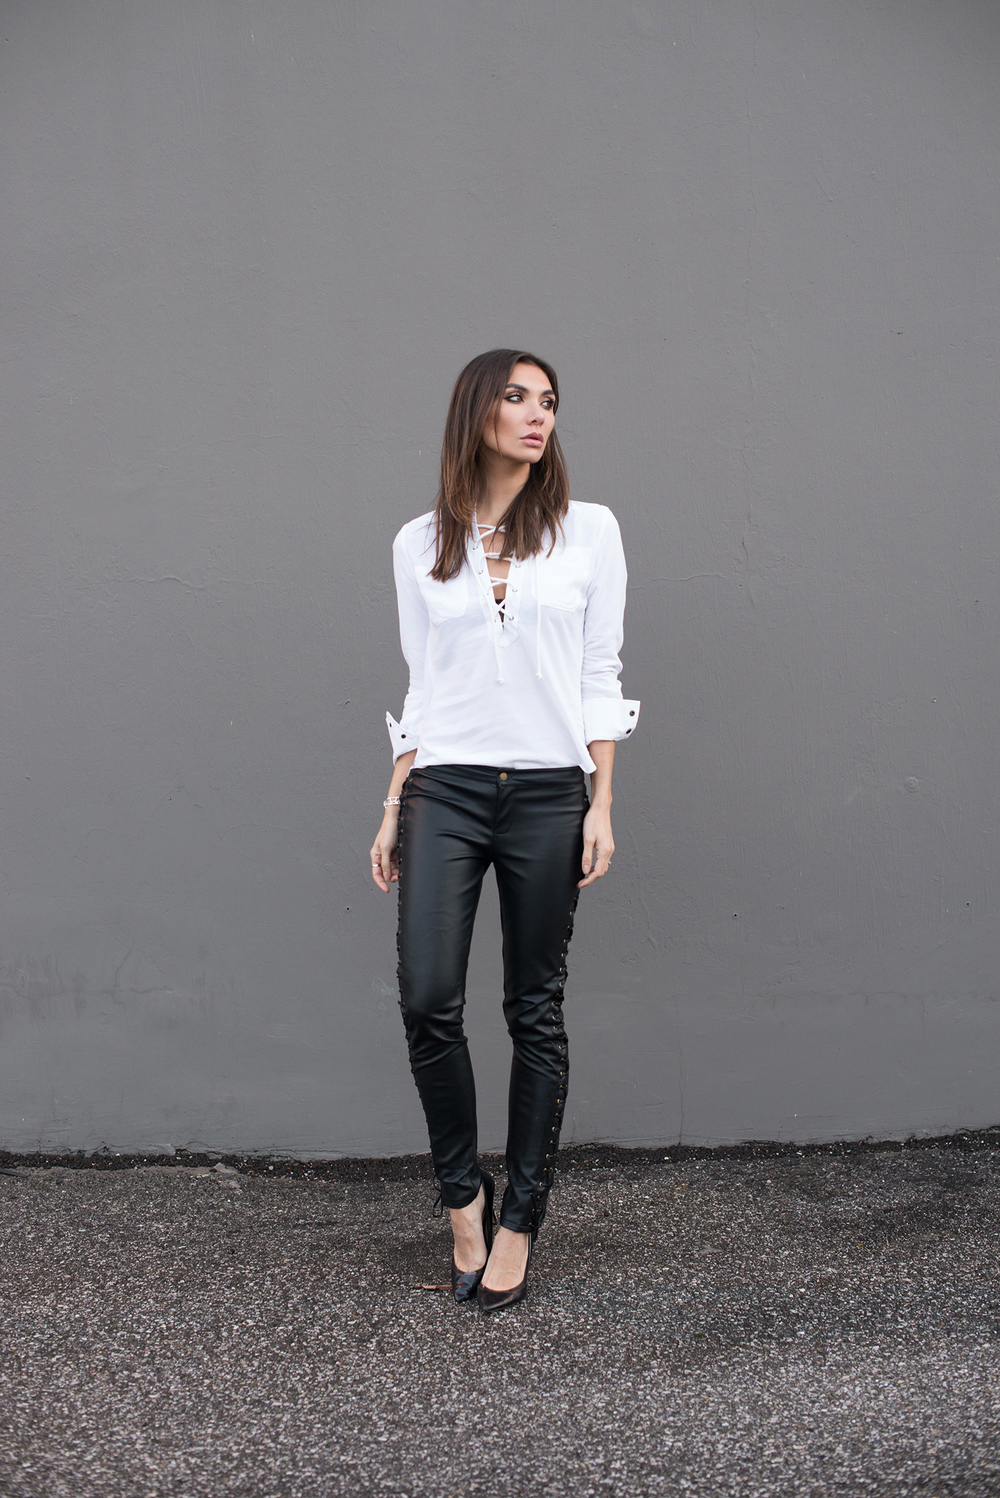 Camixa Shirt. Nightwalker Lace-up Pants (similar HERE)